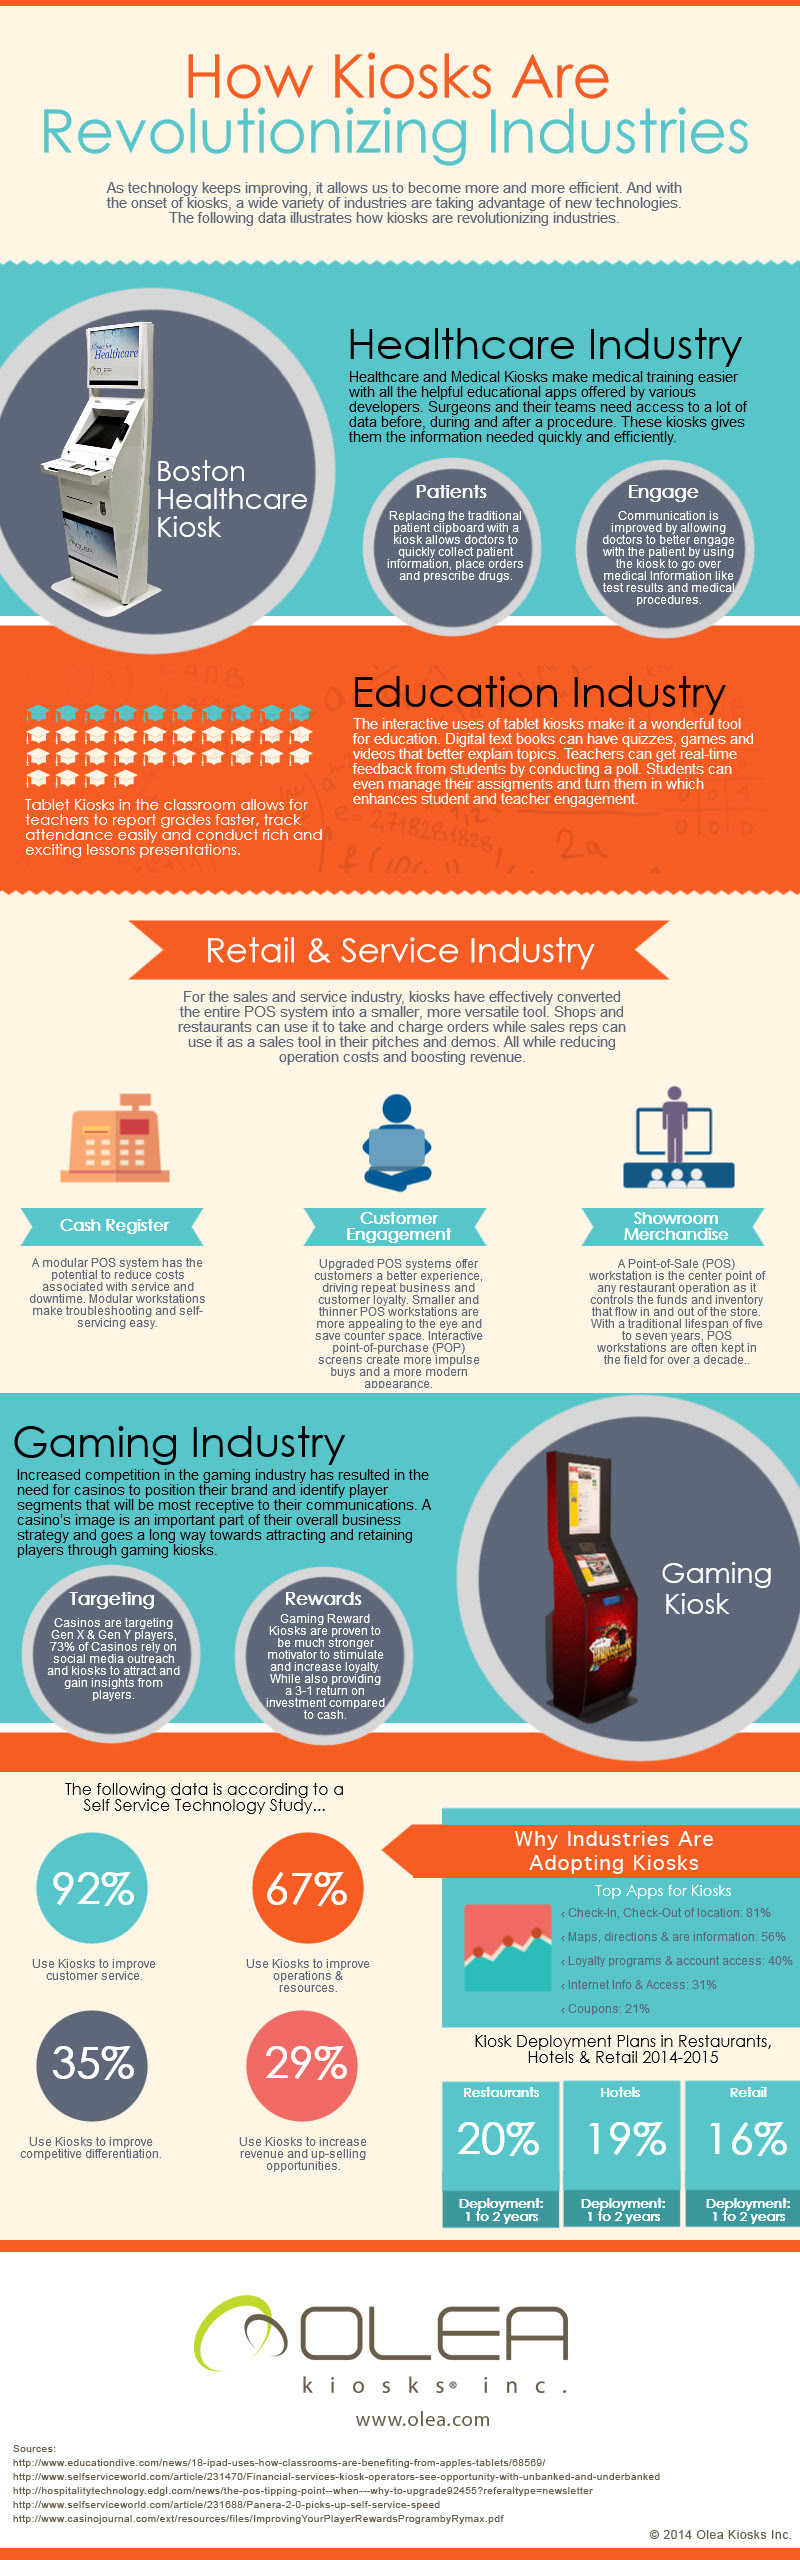 Infographic: How Kiosks Are Revolutionizing Industries